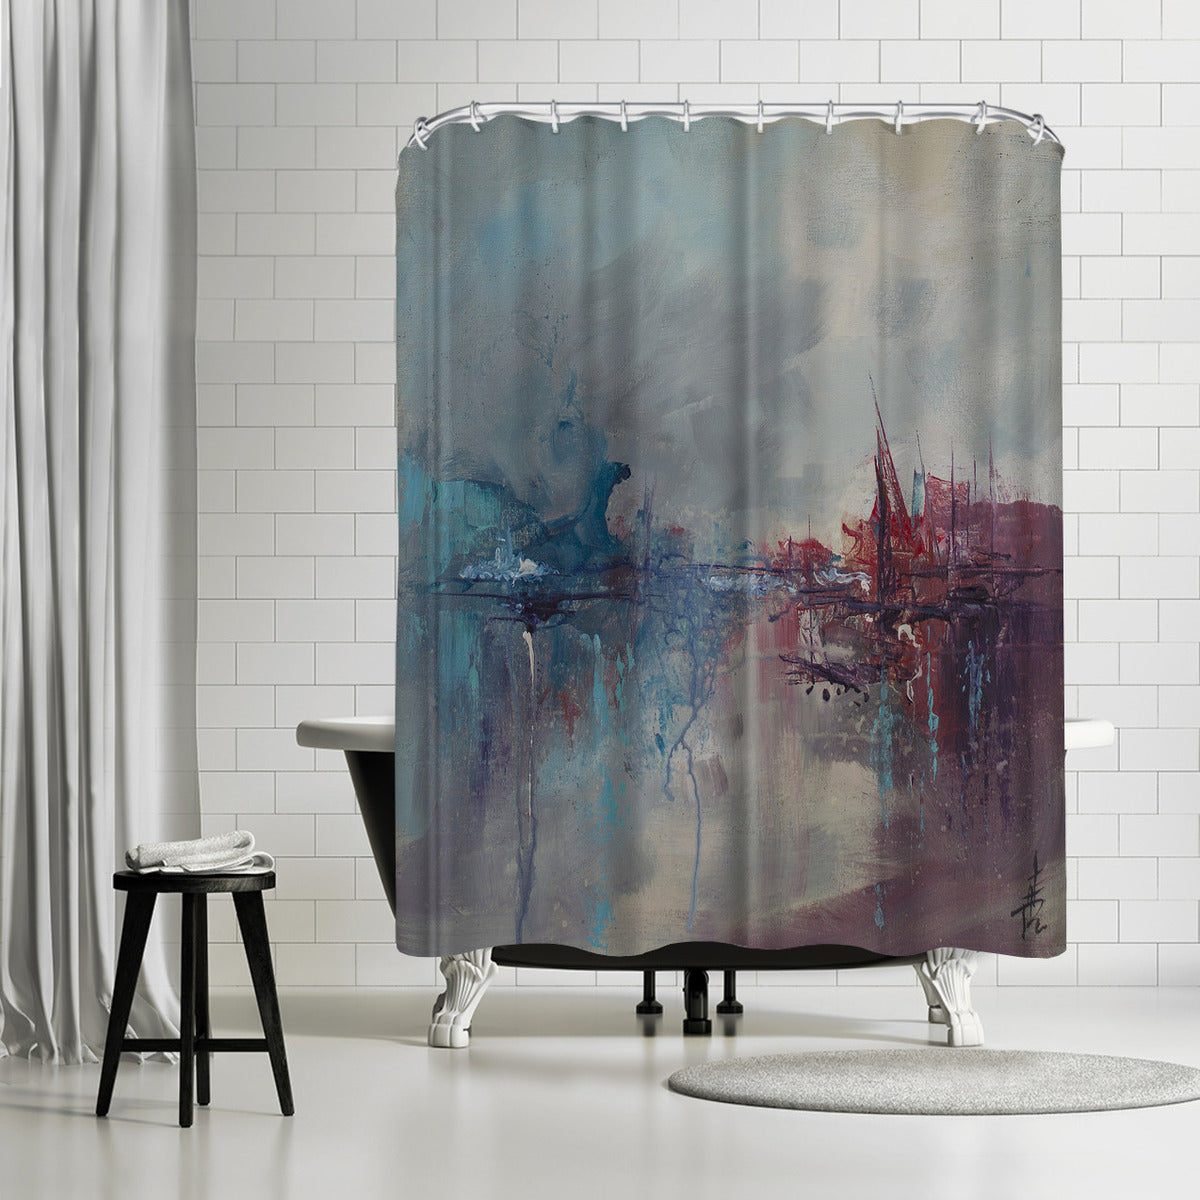 Rapture 2 by Anne Farrall Doyle Shower Curtain - Shower Curtain - Americanflat